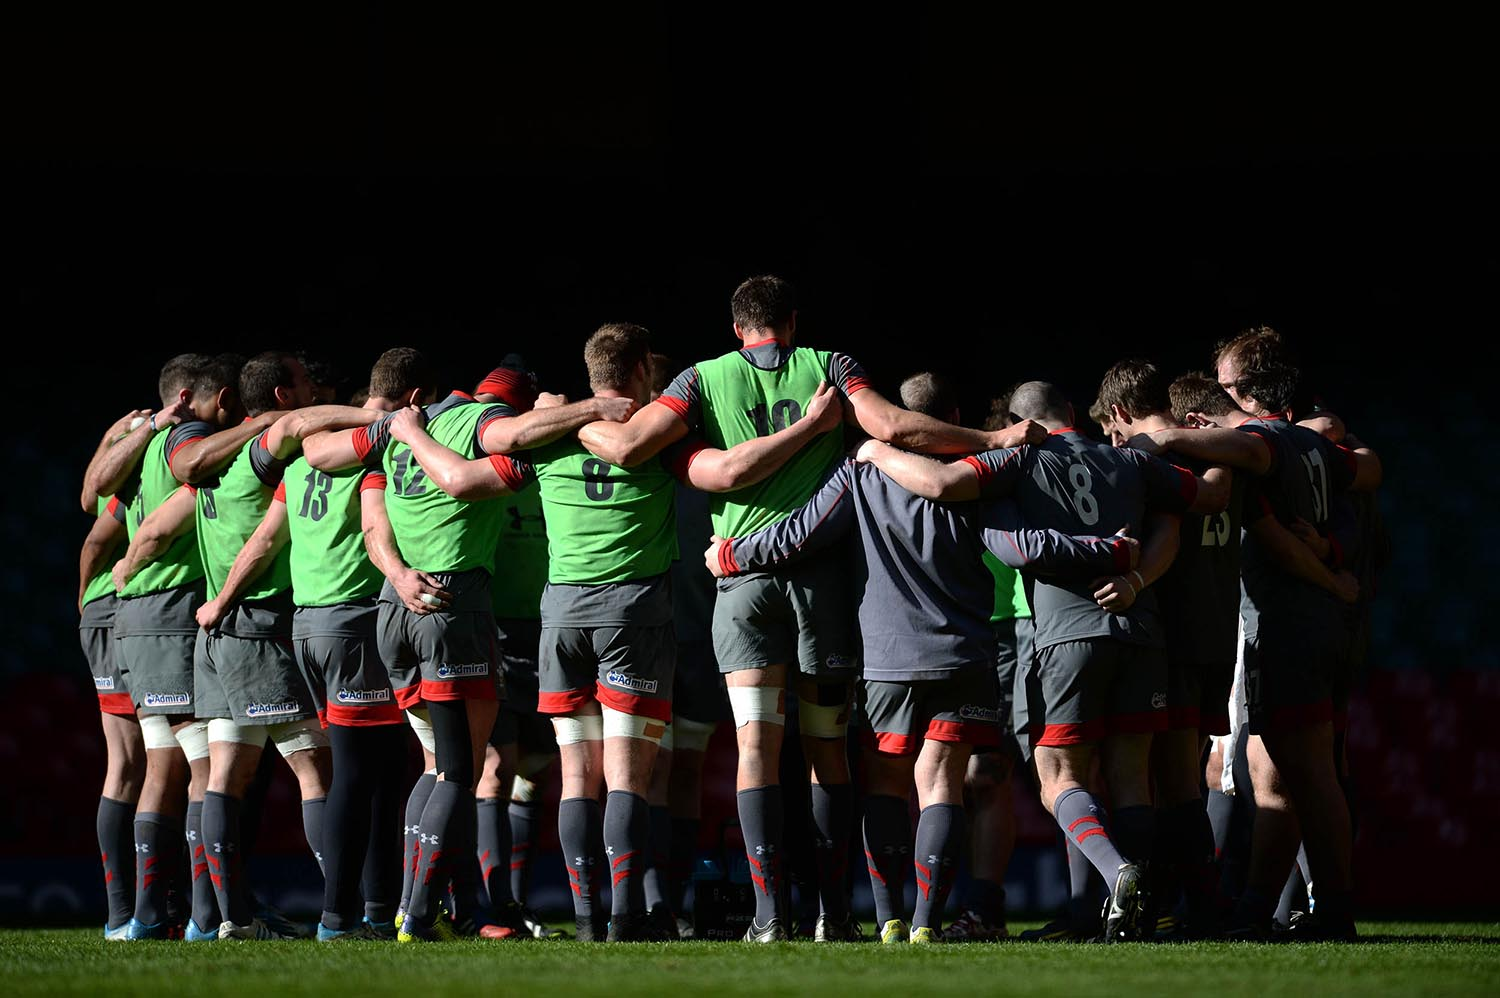 Wales Rugby Team huddle during training